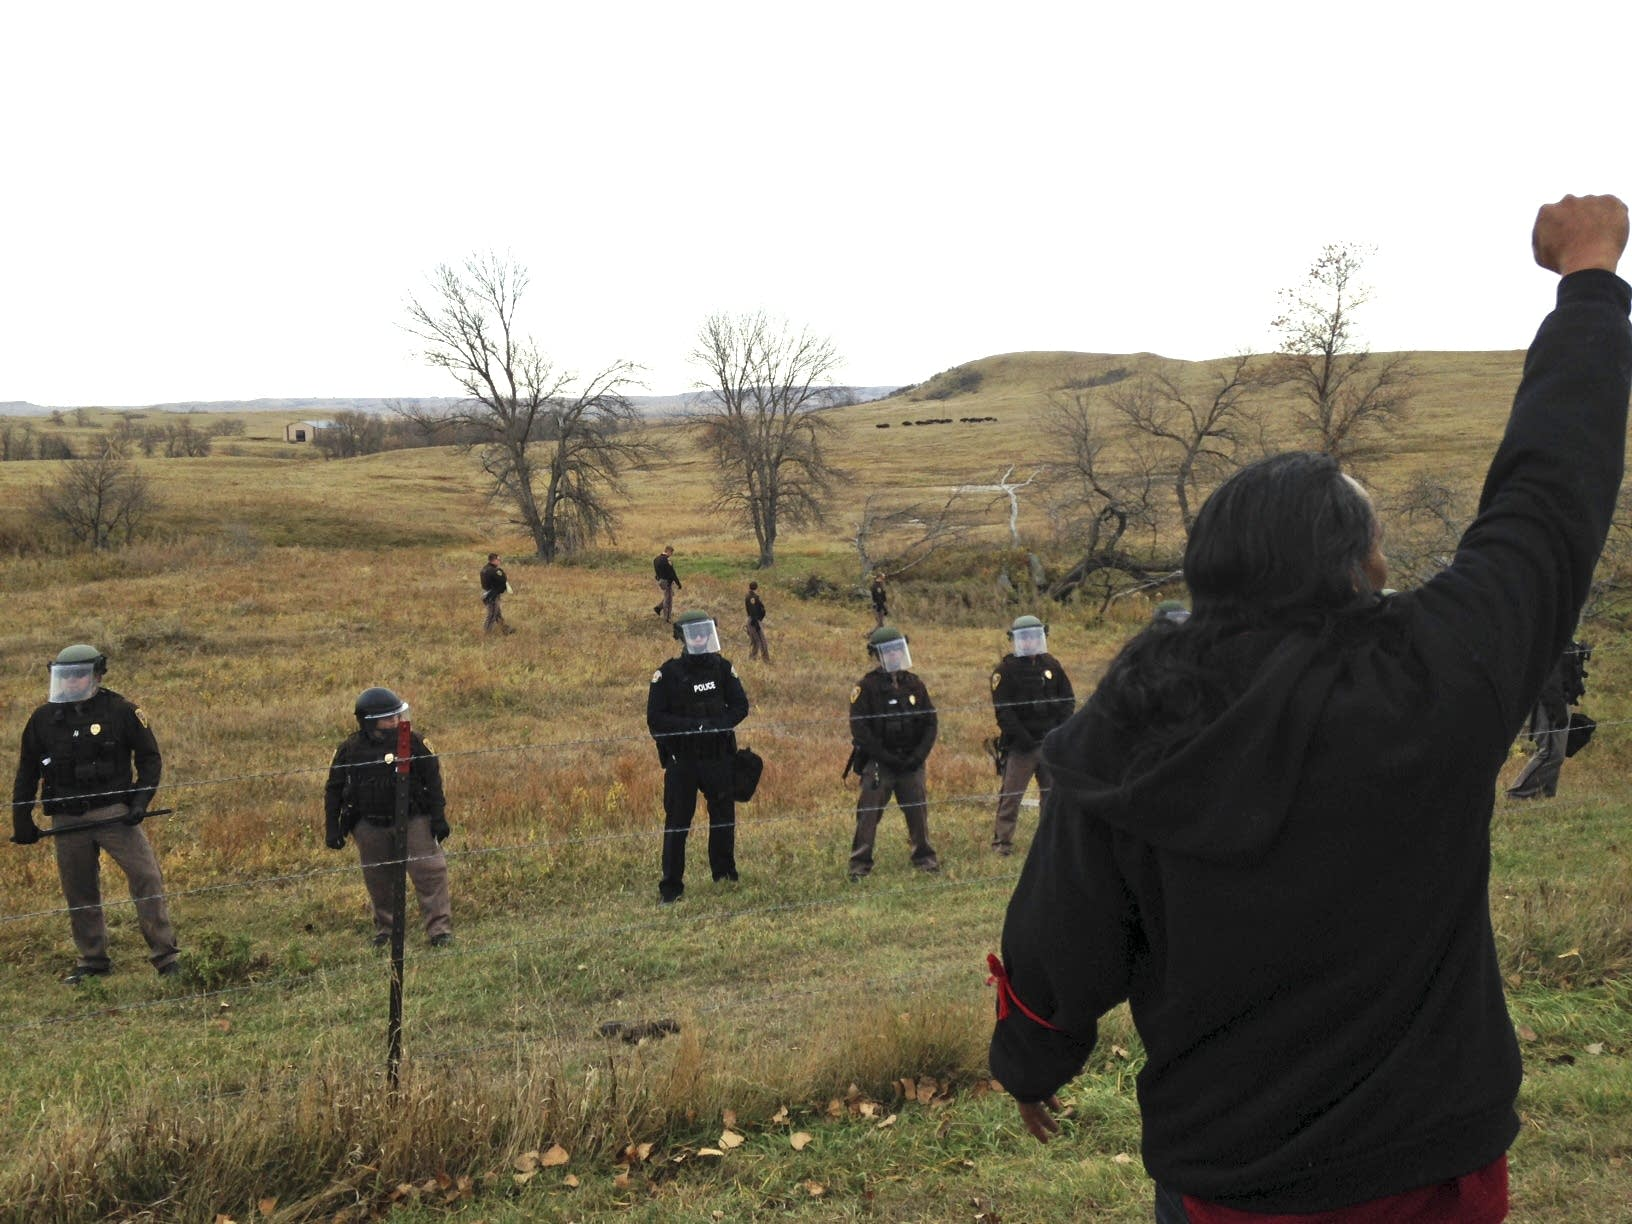 Pipeline protester defies law enforcement officers.